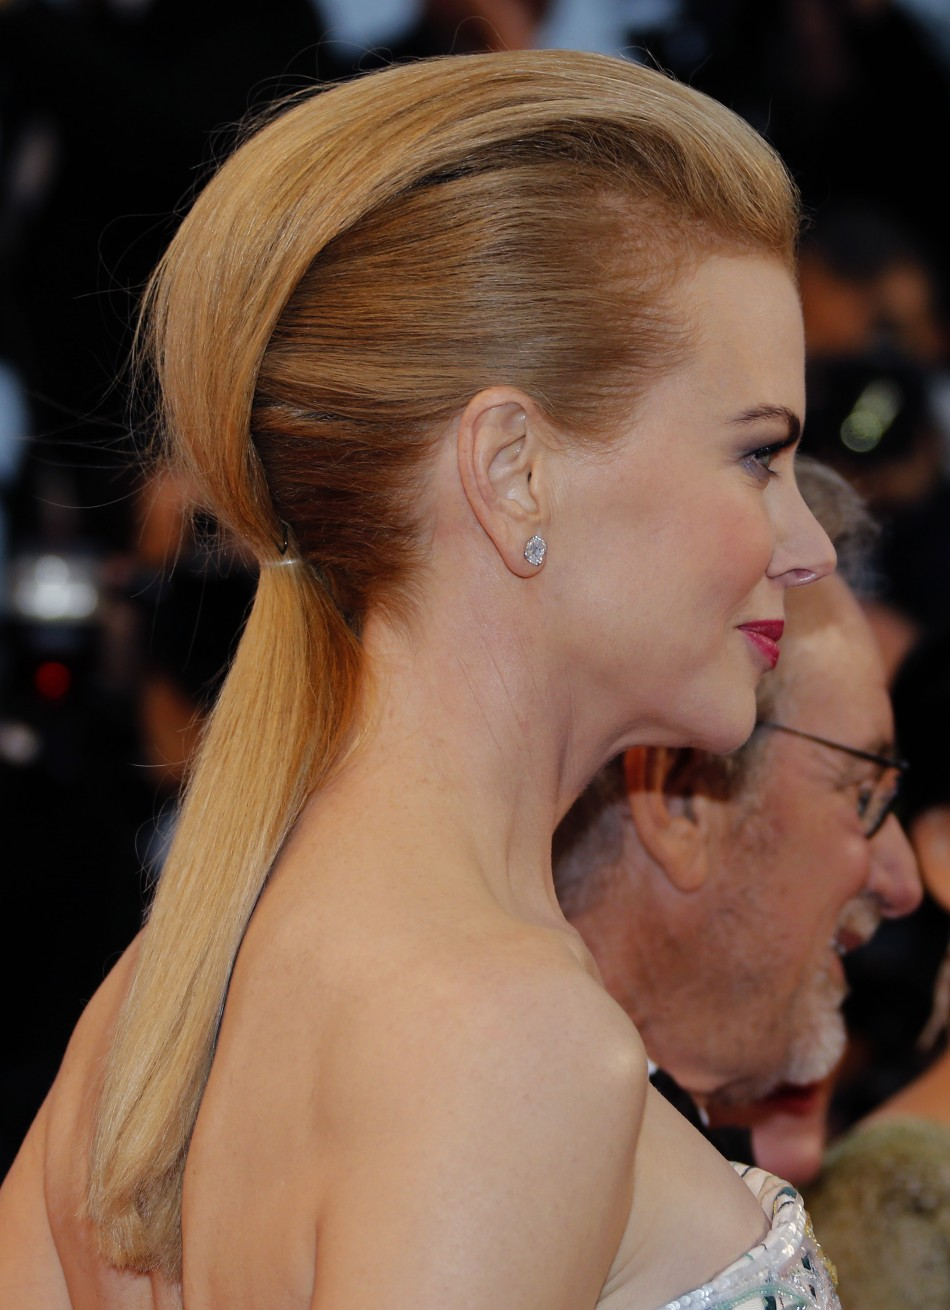 REUTERS/Regis Duvignau Jury member of the 66th Cannes Film Festival actress Nicole Kidman arrives on the red carpet for the screening of the film 'The Great ... - cannes-film-festival-2013-fashion-that-stood-out-red-carpet